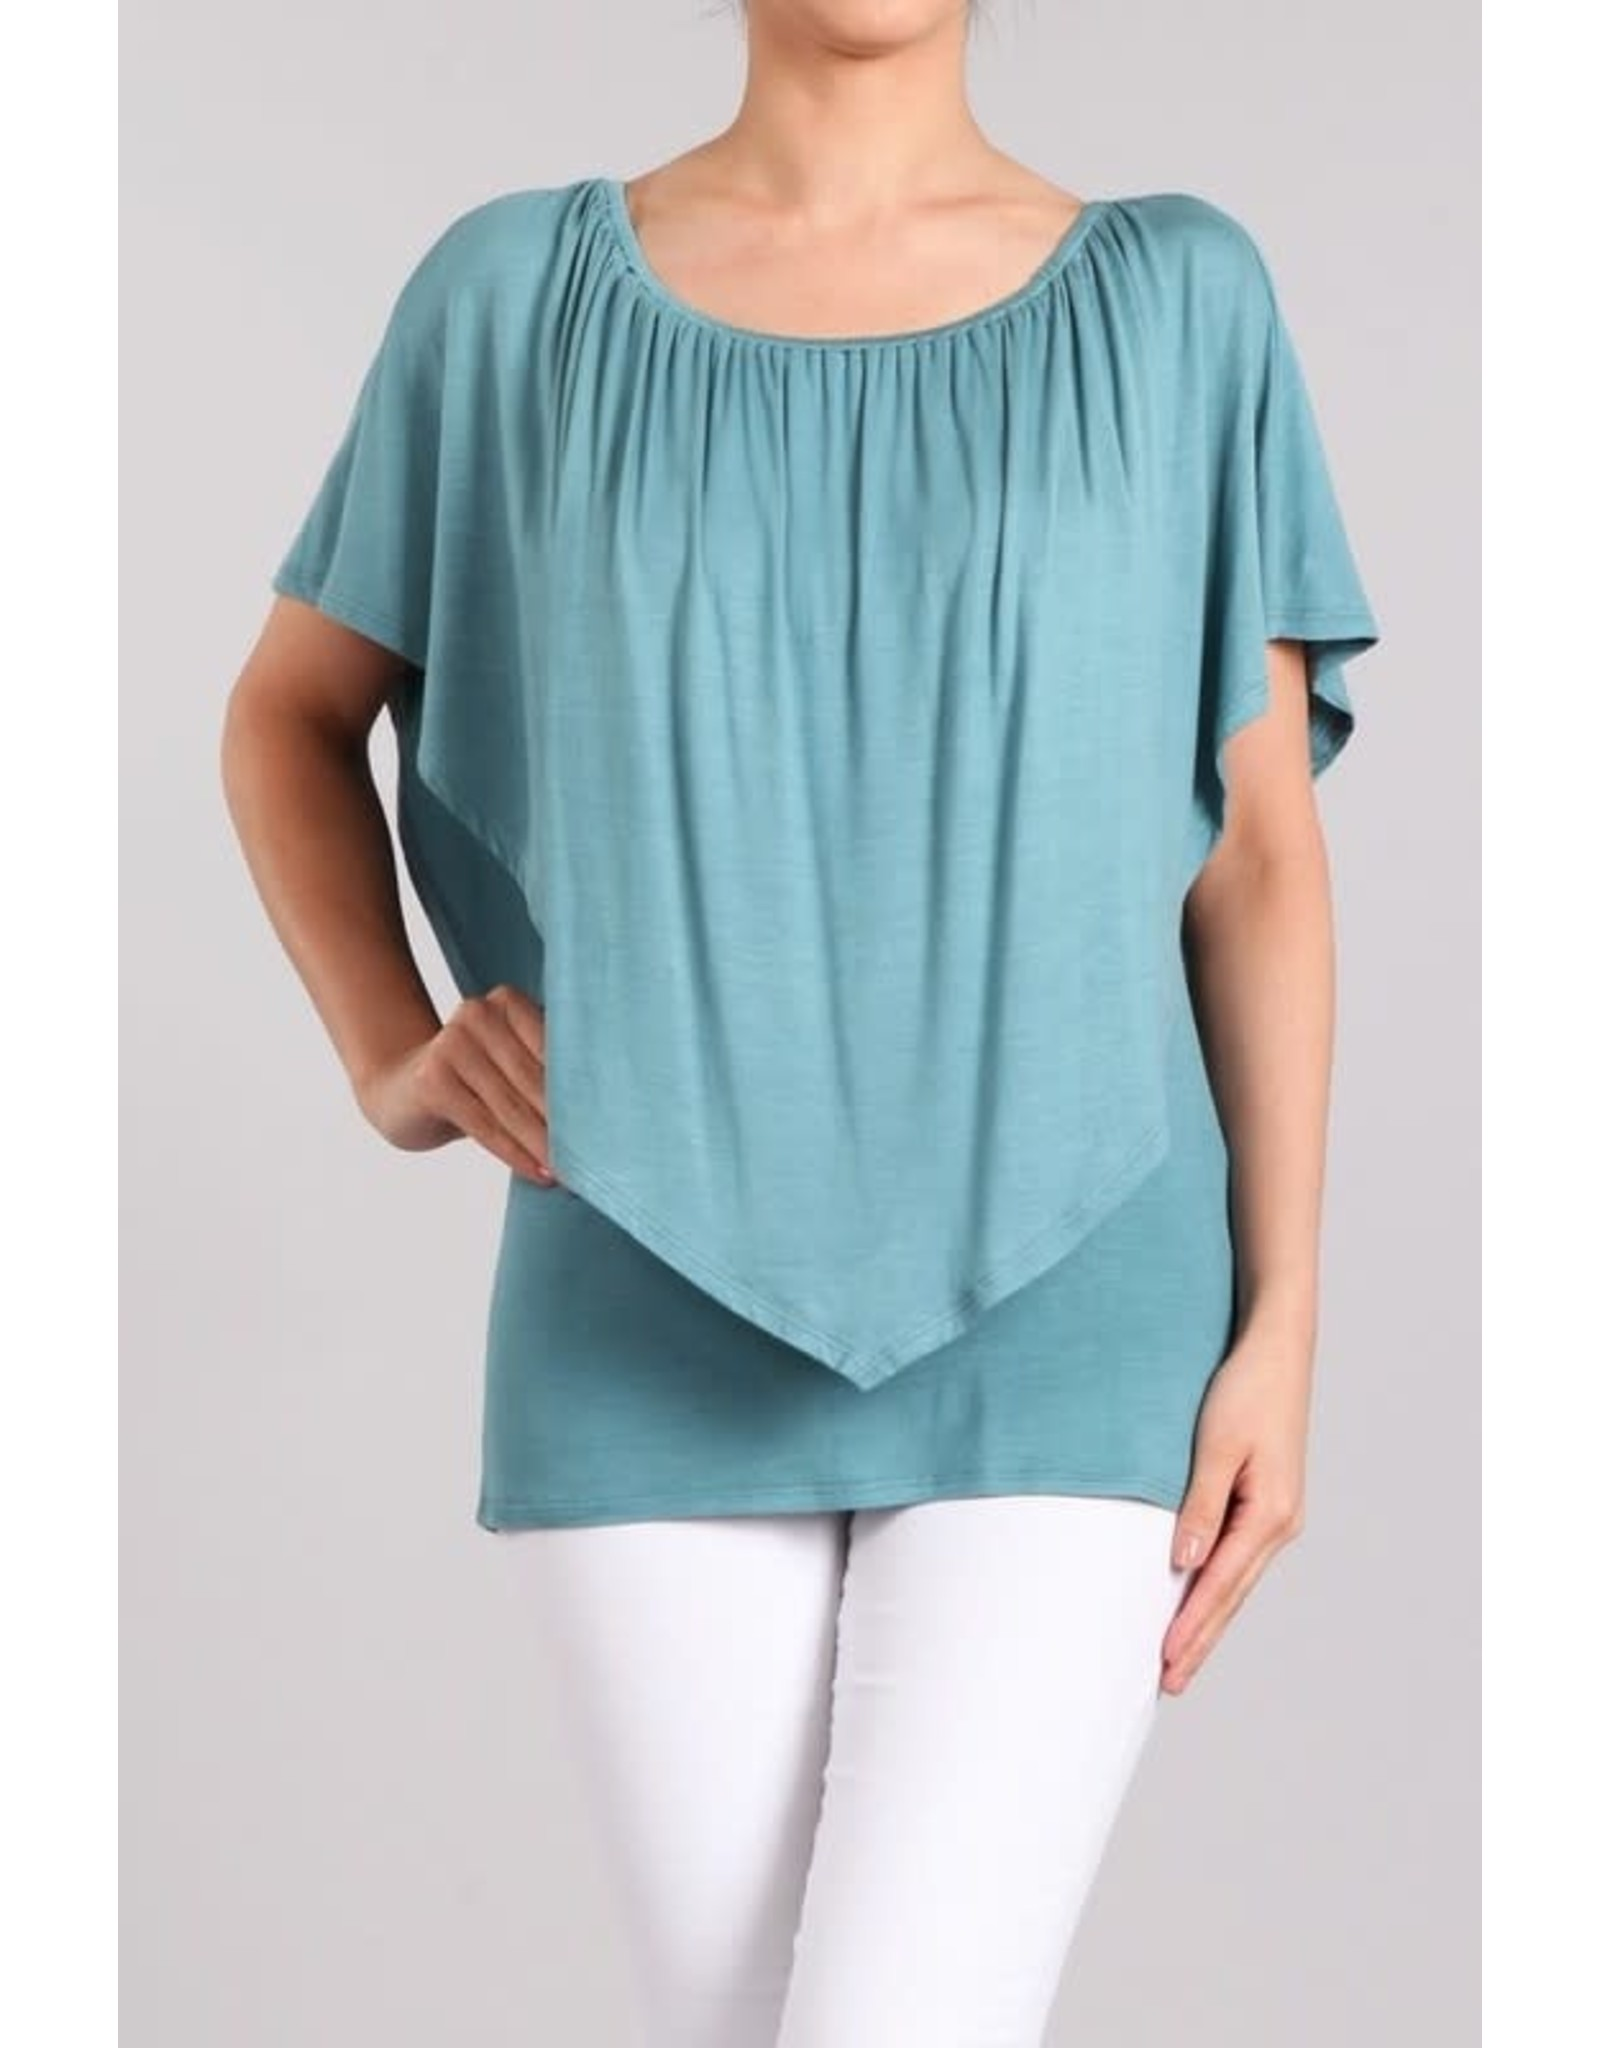 Convertible Poncho Top Teal Breeze